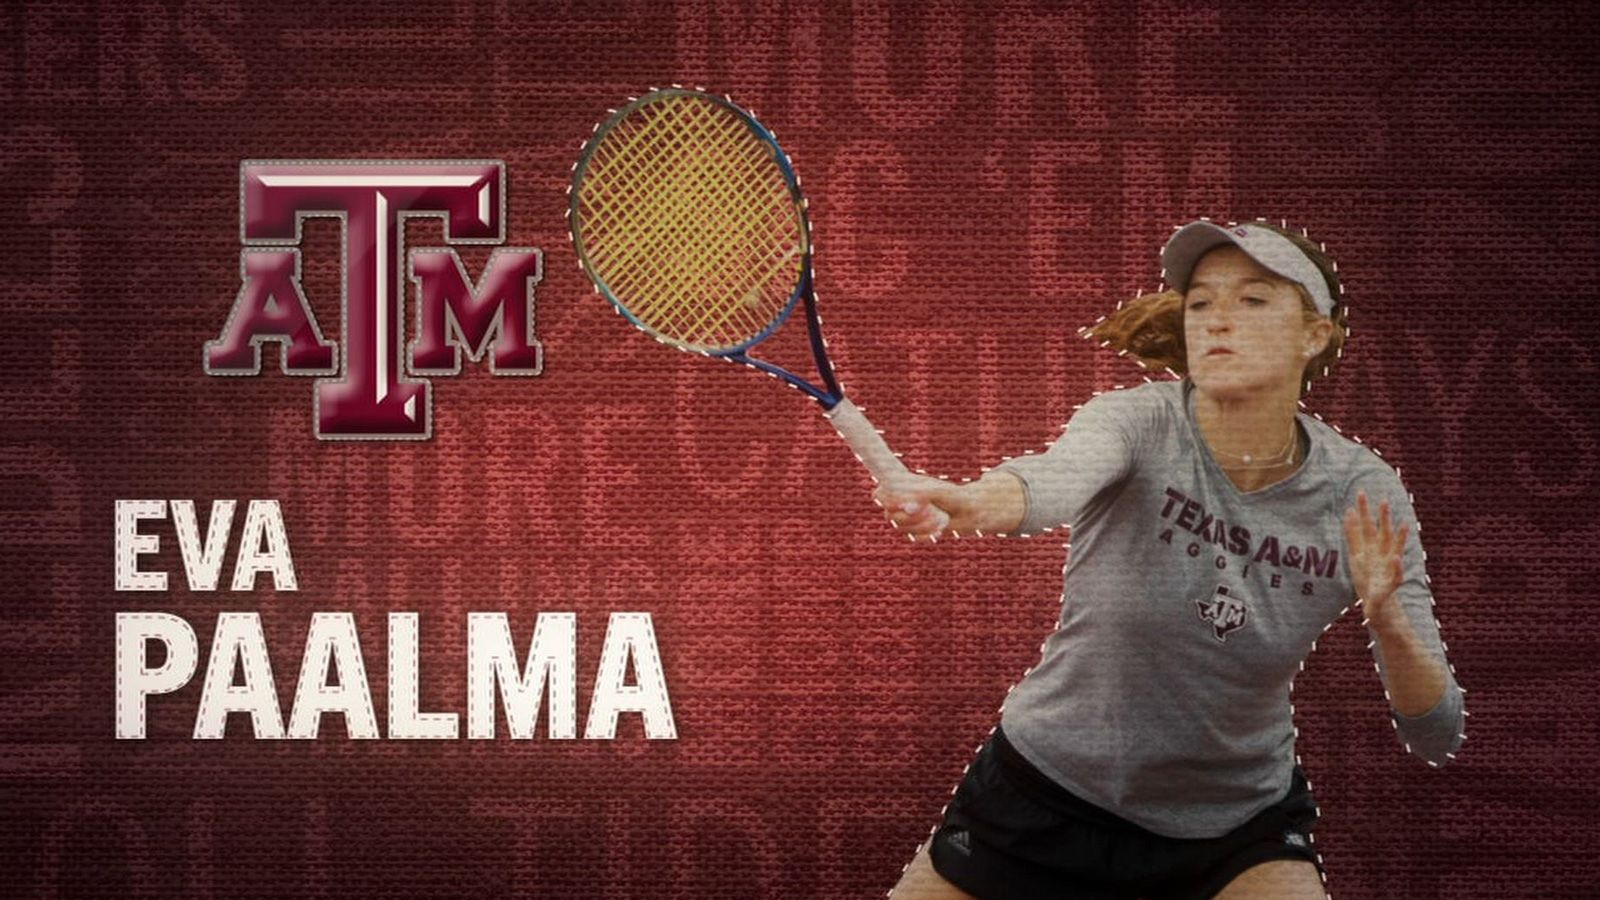 I am the SEC: Texas A&M's Eva Paalma